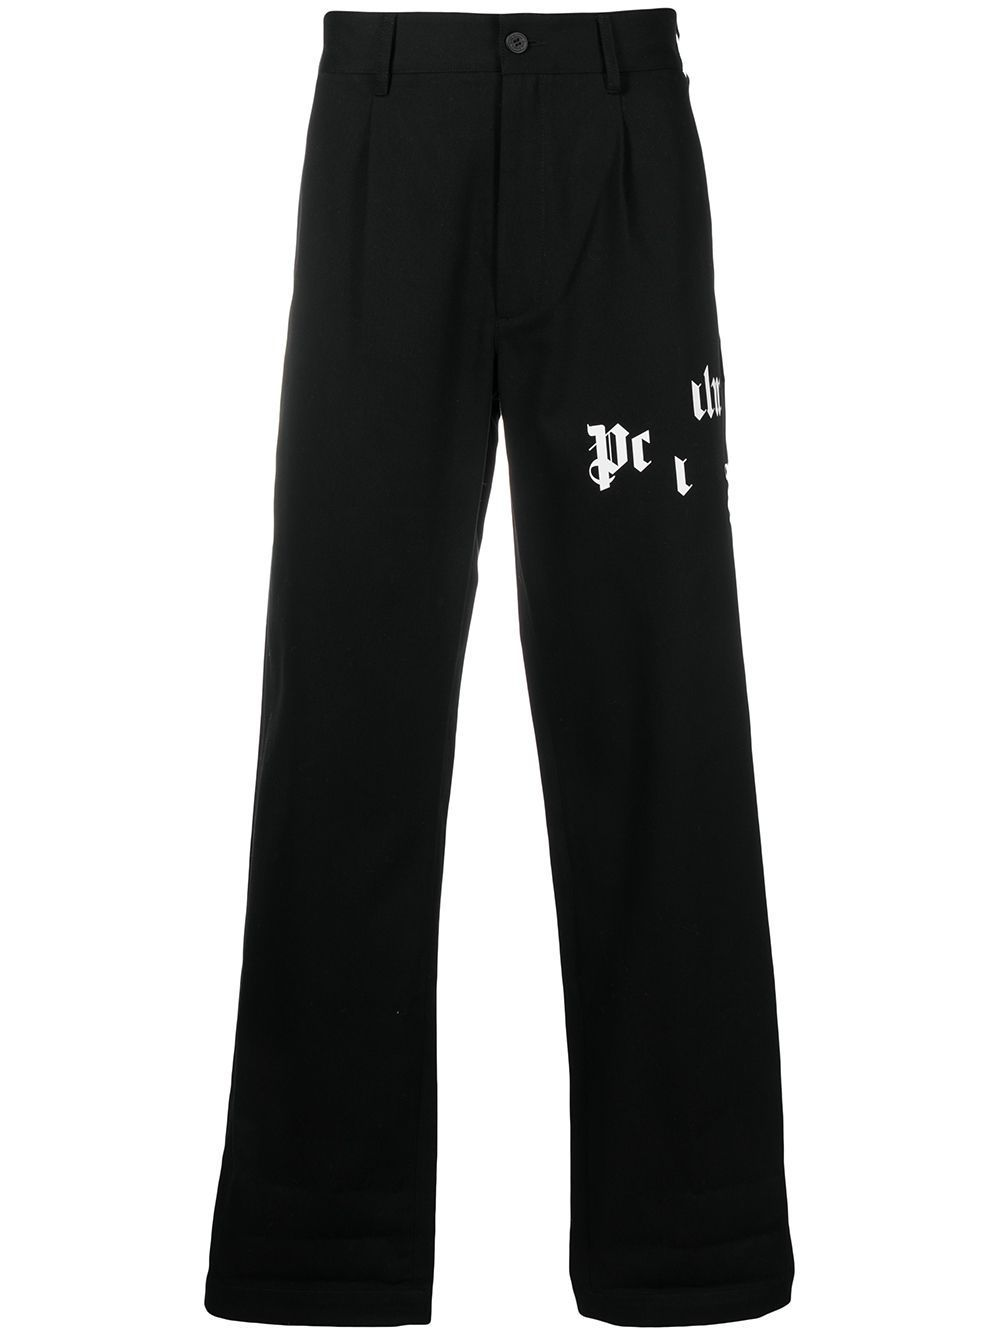 PALM ANGELS Broken Logo Chinos Black - Maison De Fashion